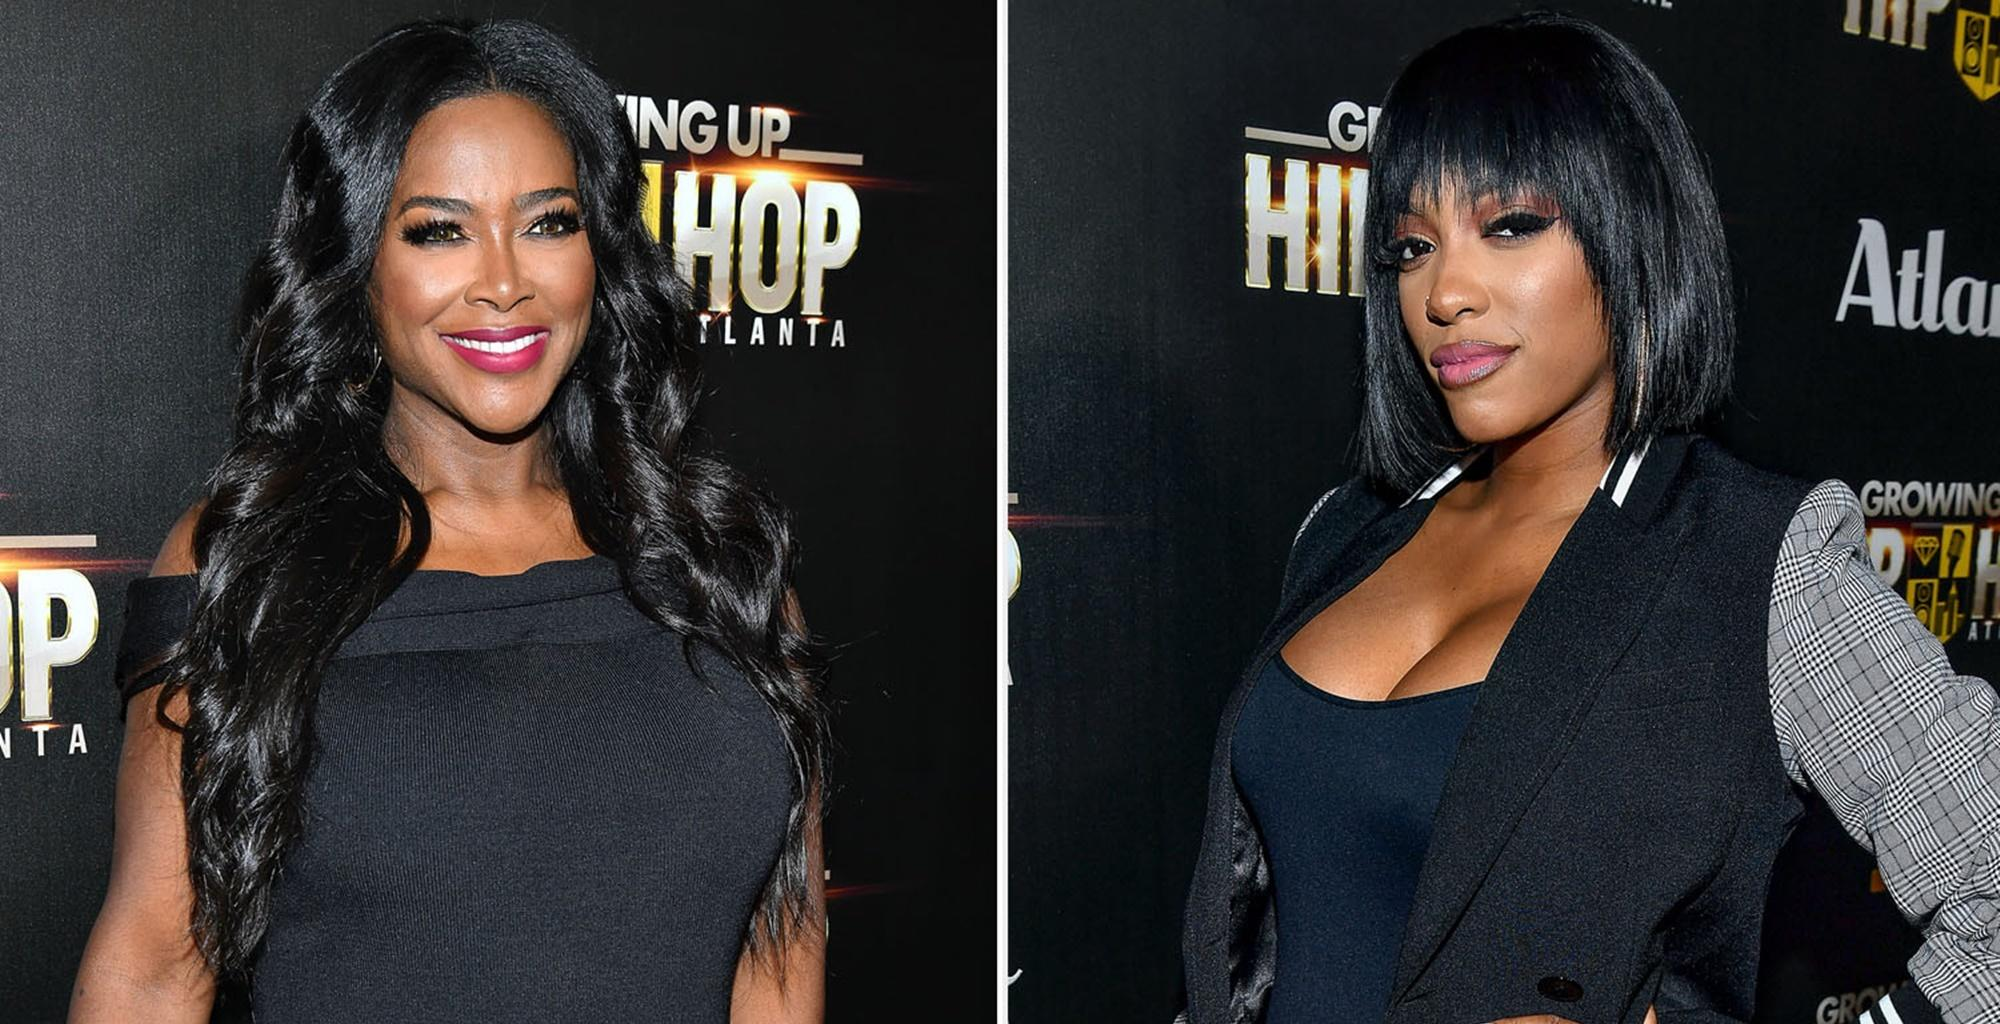 Kenya Moore And Porsha Williams Share Photos Of Newborn Daughters With Loving 'RHOA' Fans